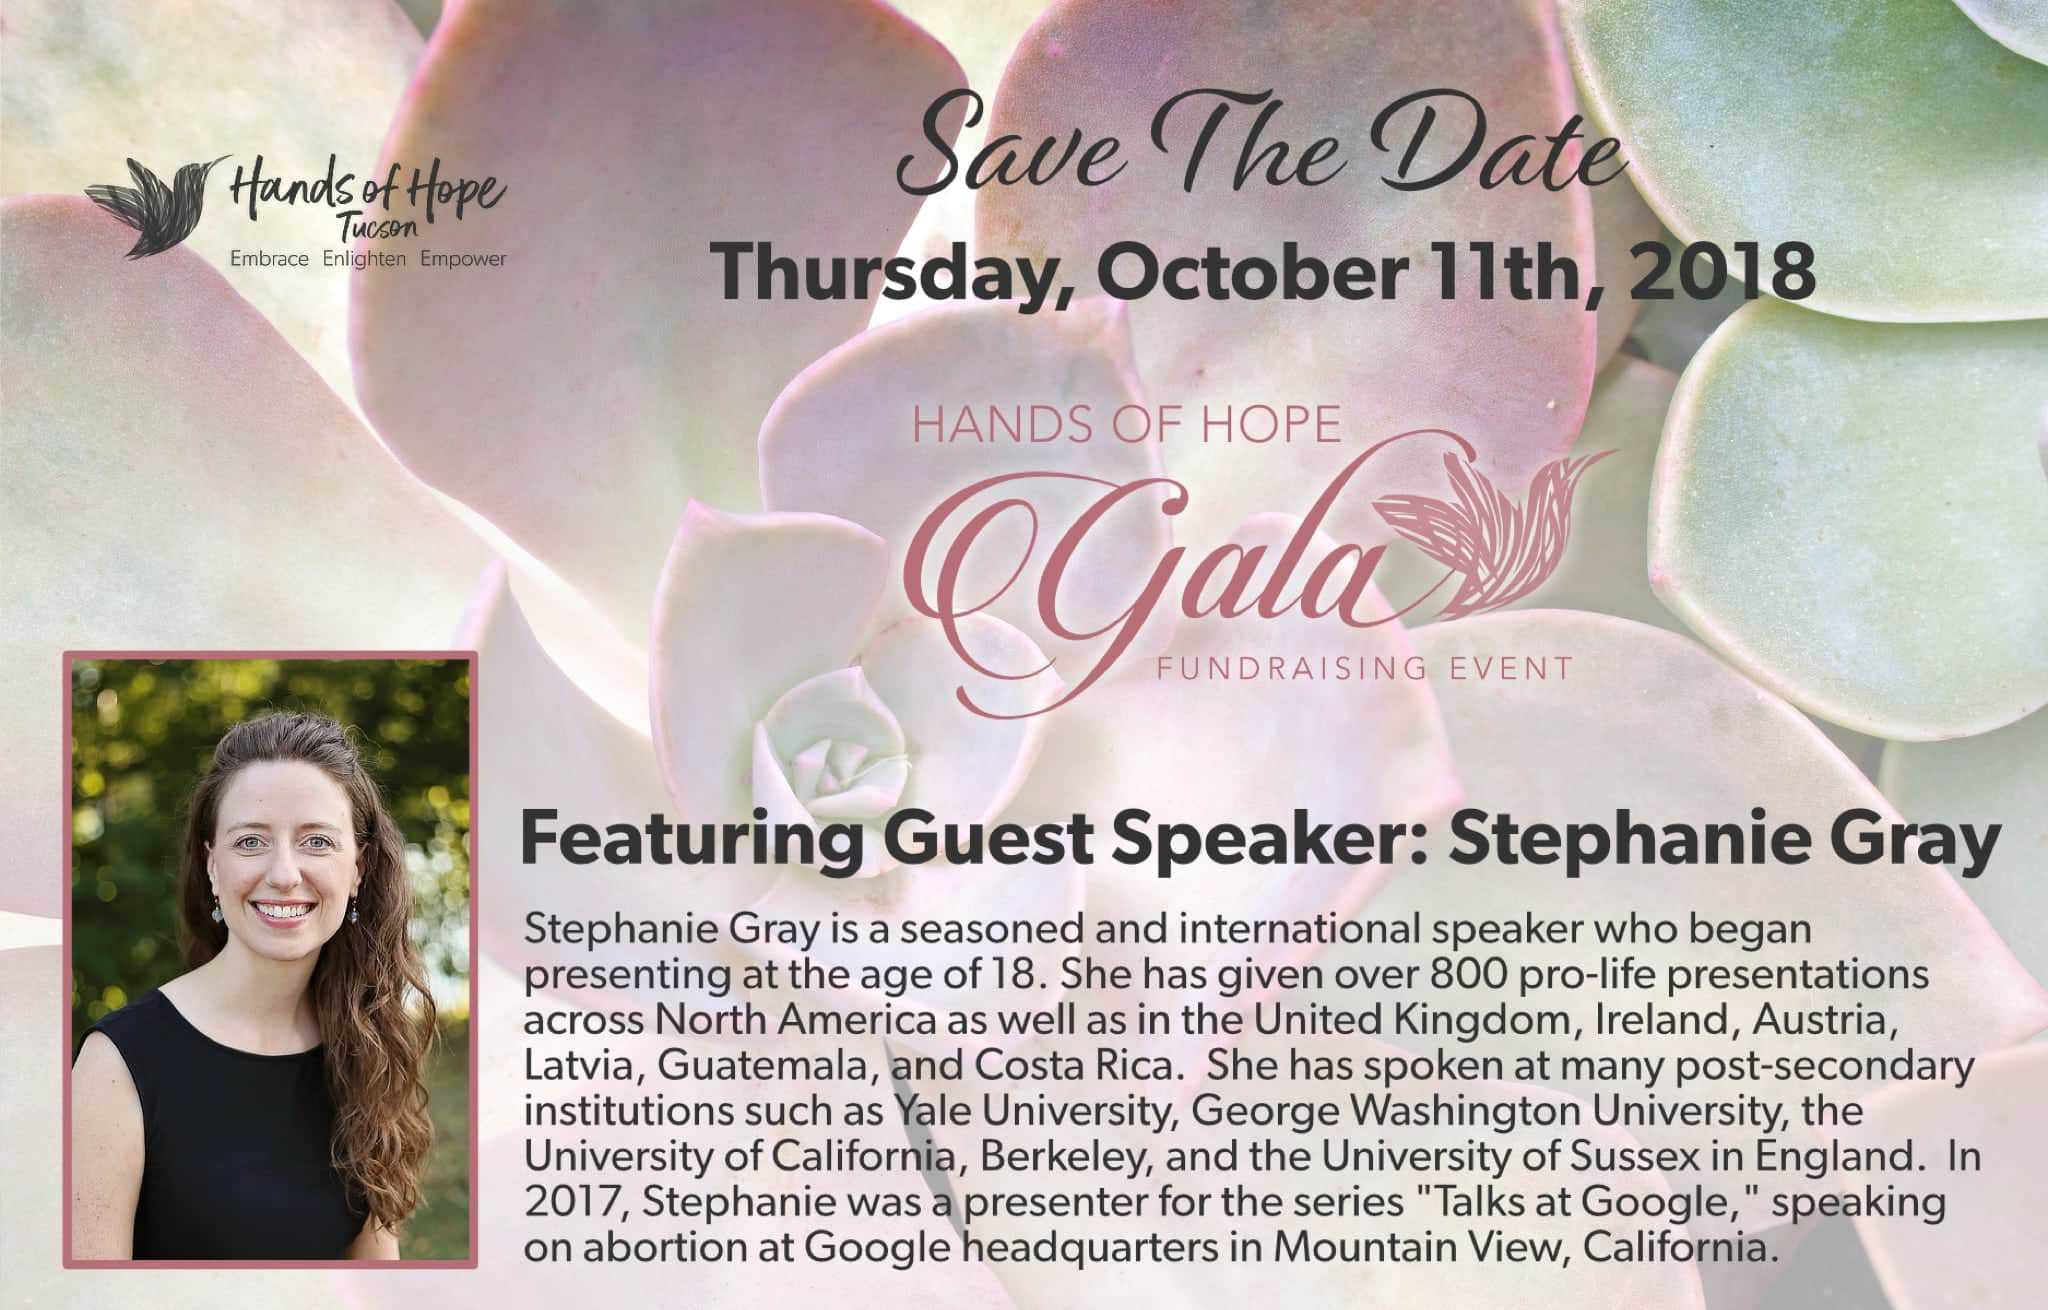 2018-gala-save-the-date 2018 Gala Fundraising Event